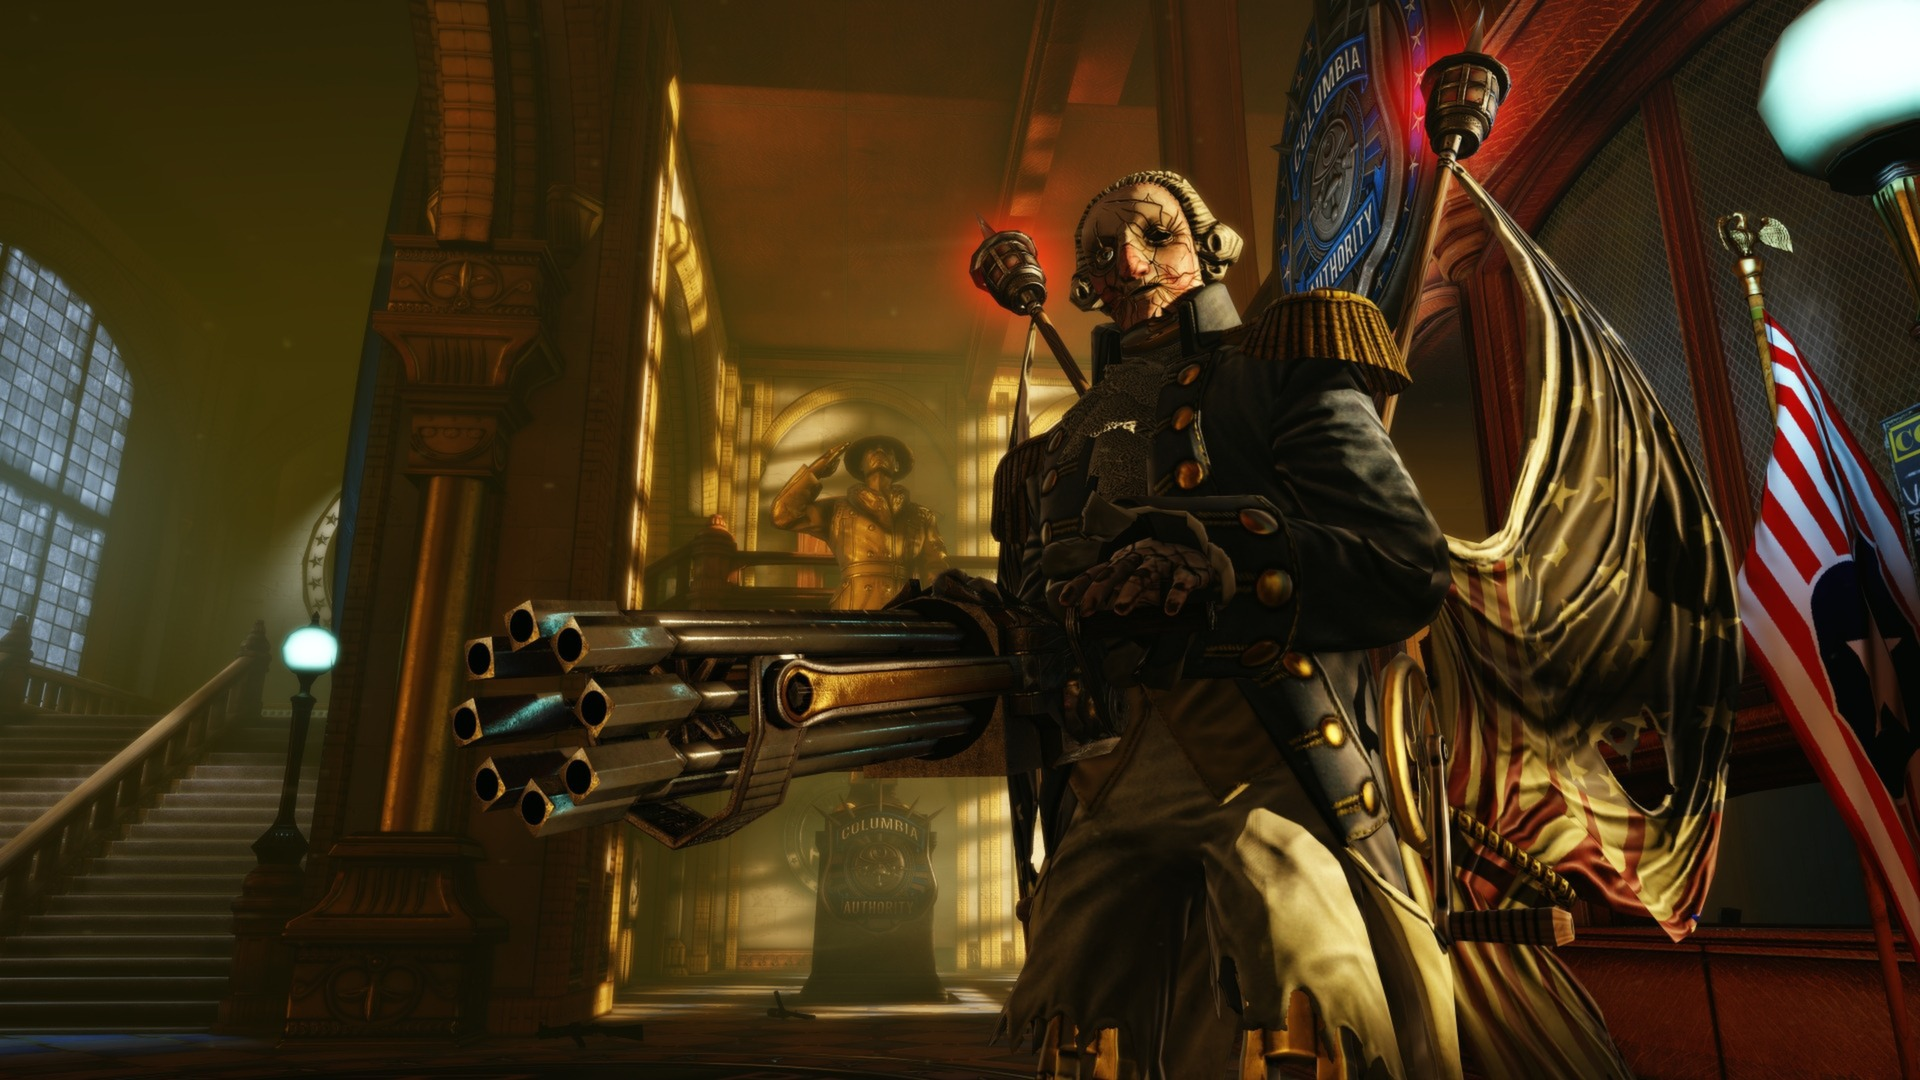 how to get bioshock for free mac